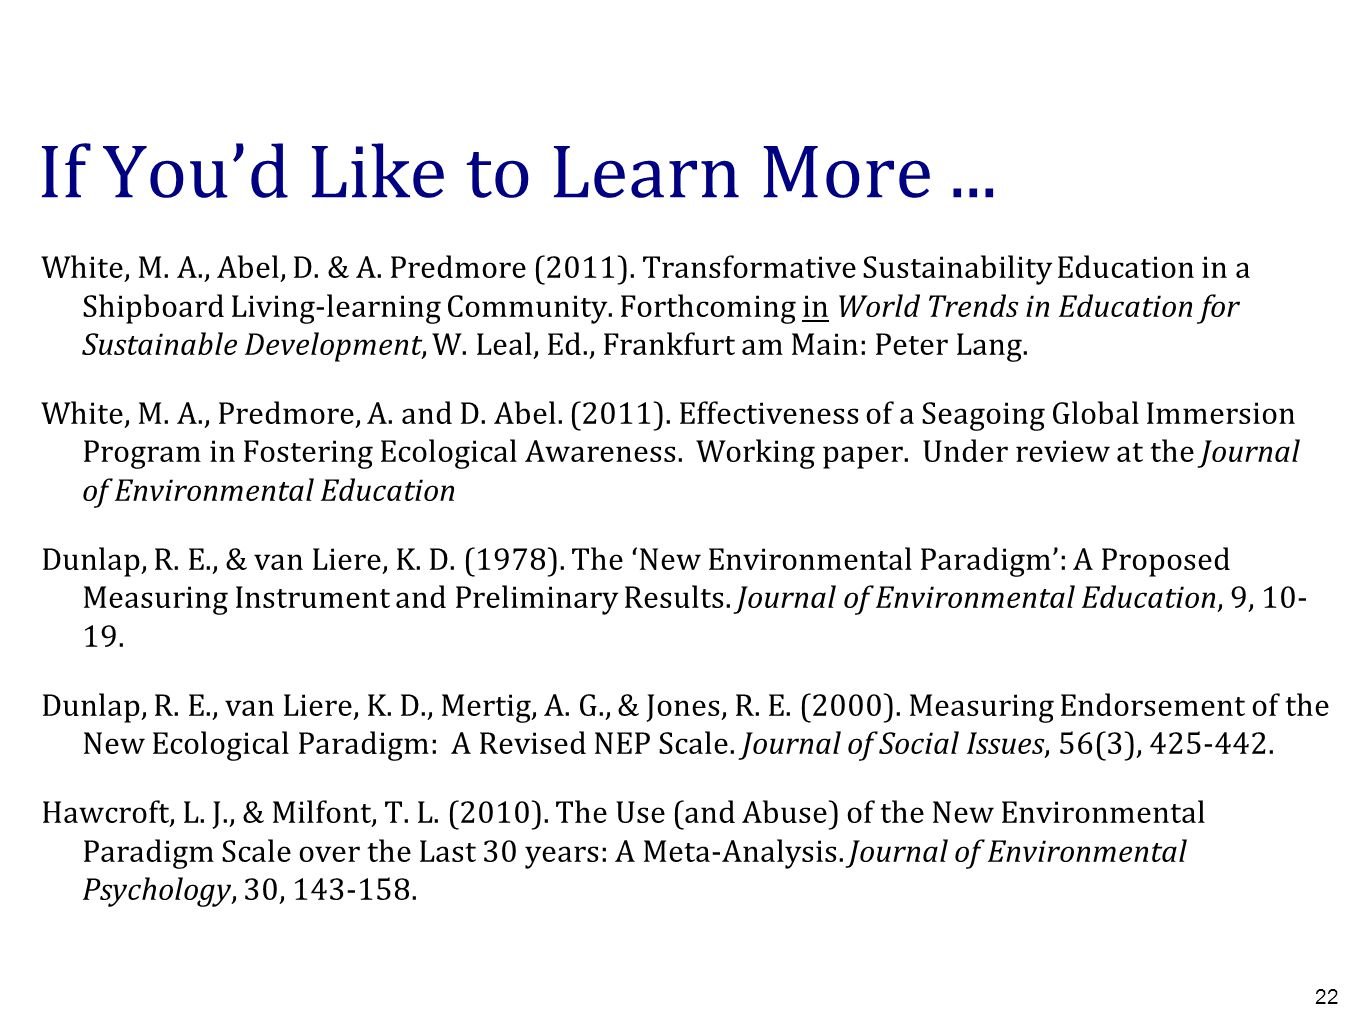 22 White, M. A., Abel, D. & A. Predmore (2011). Transformative Sustainability Education in a Shipboard Living-learning Community. Forthcoming in World